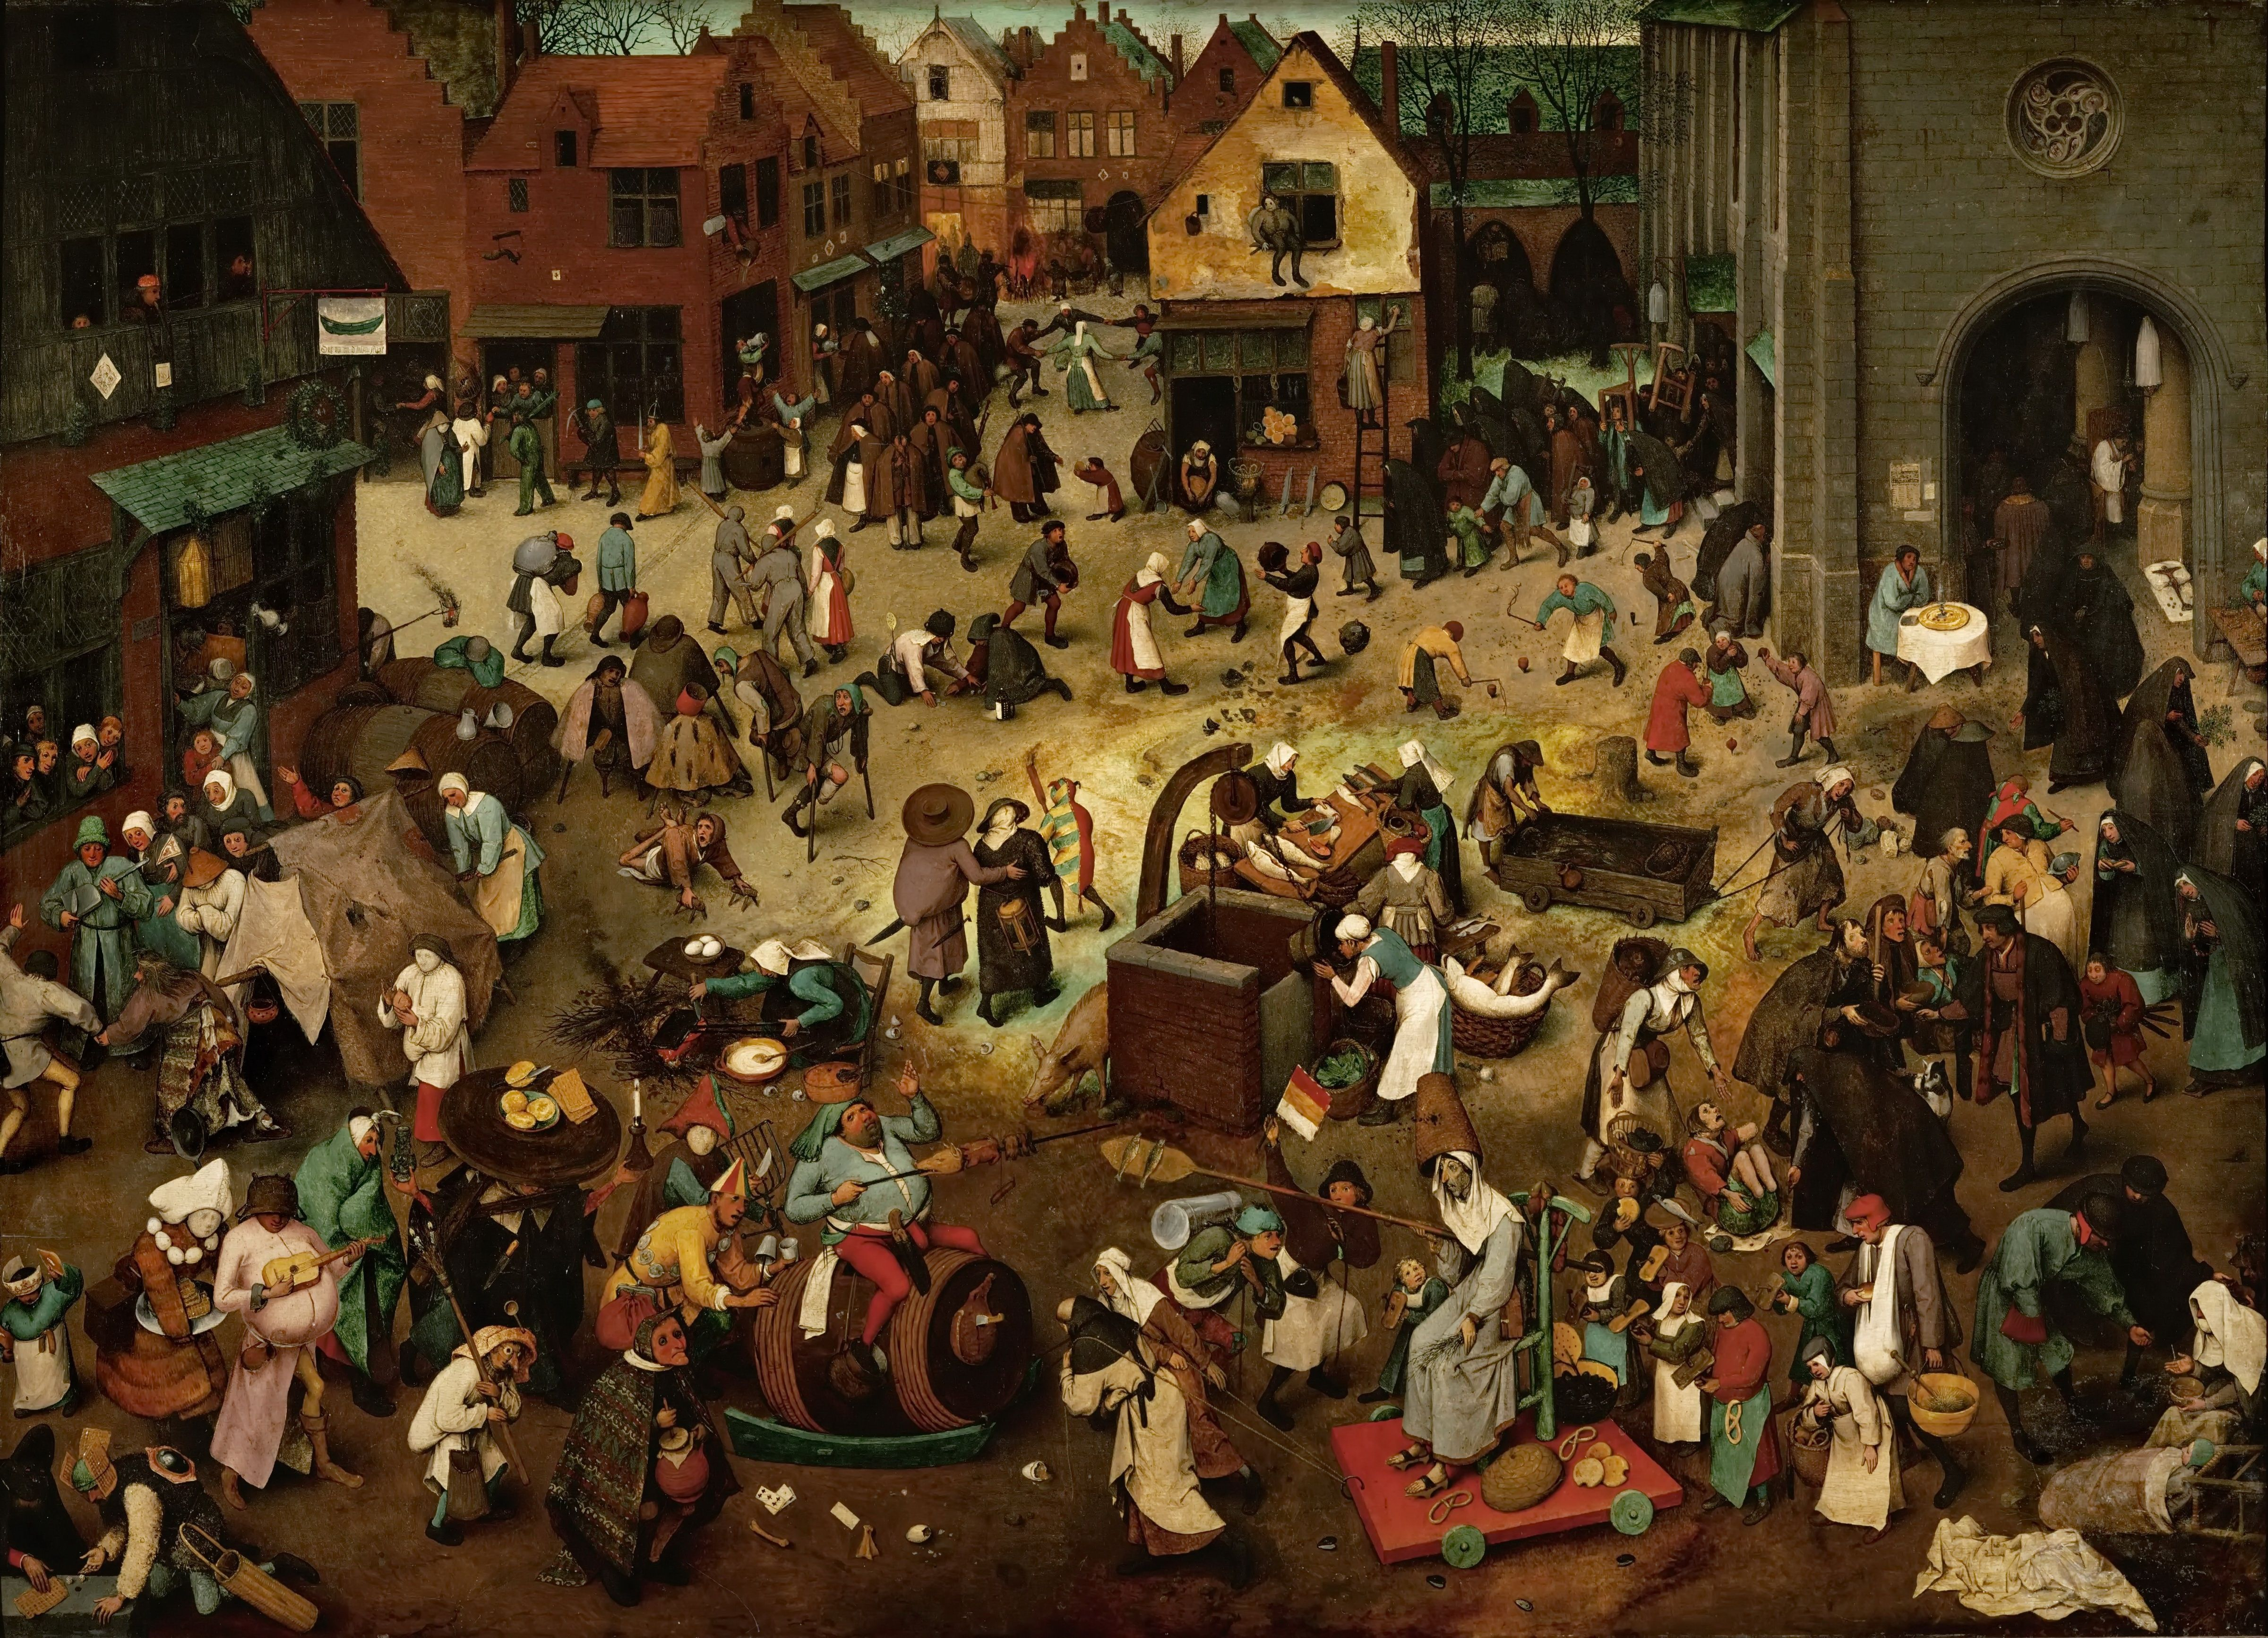 Carnival Culture Unmasking The World Of Hidden Identities Attire Club By Fraquoh And Franchomme Pieter Bruegel The Elder Art Kunsthistorisches Museum